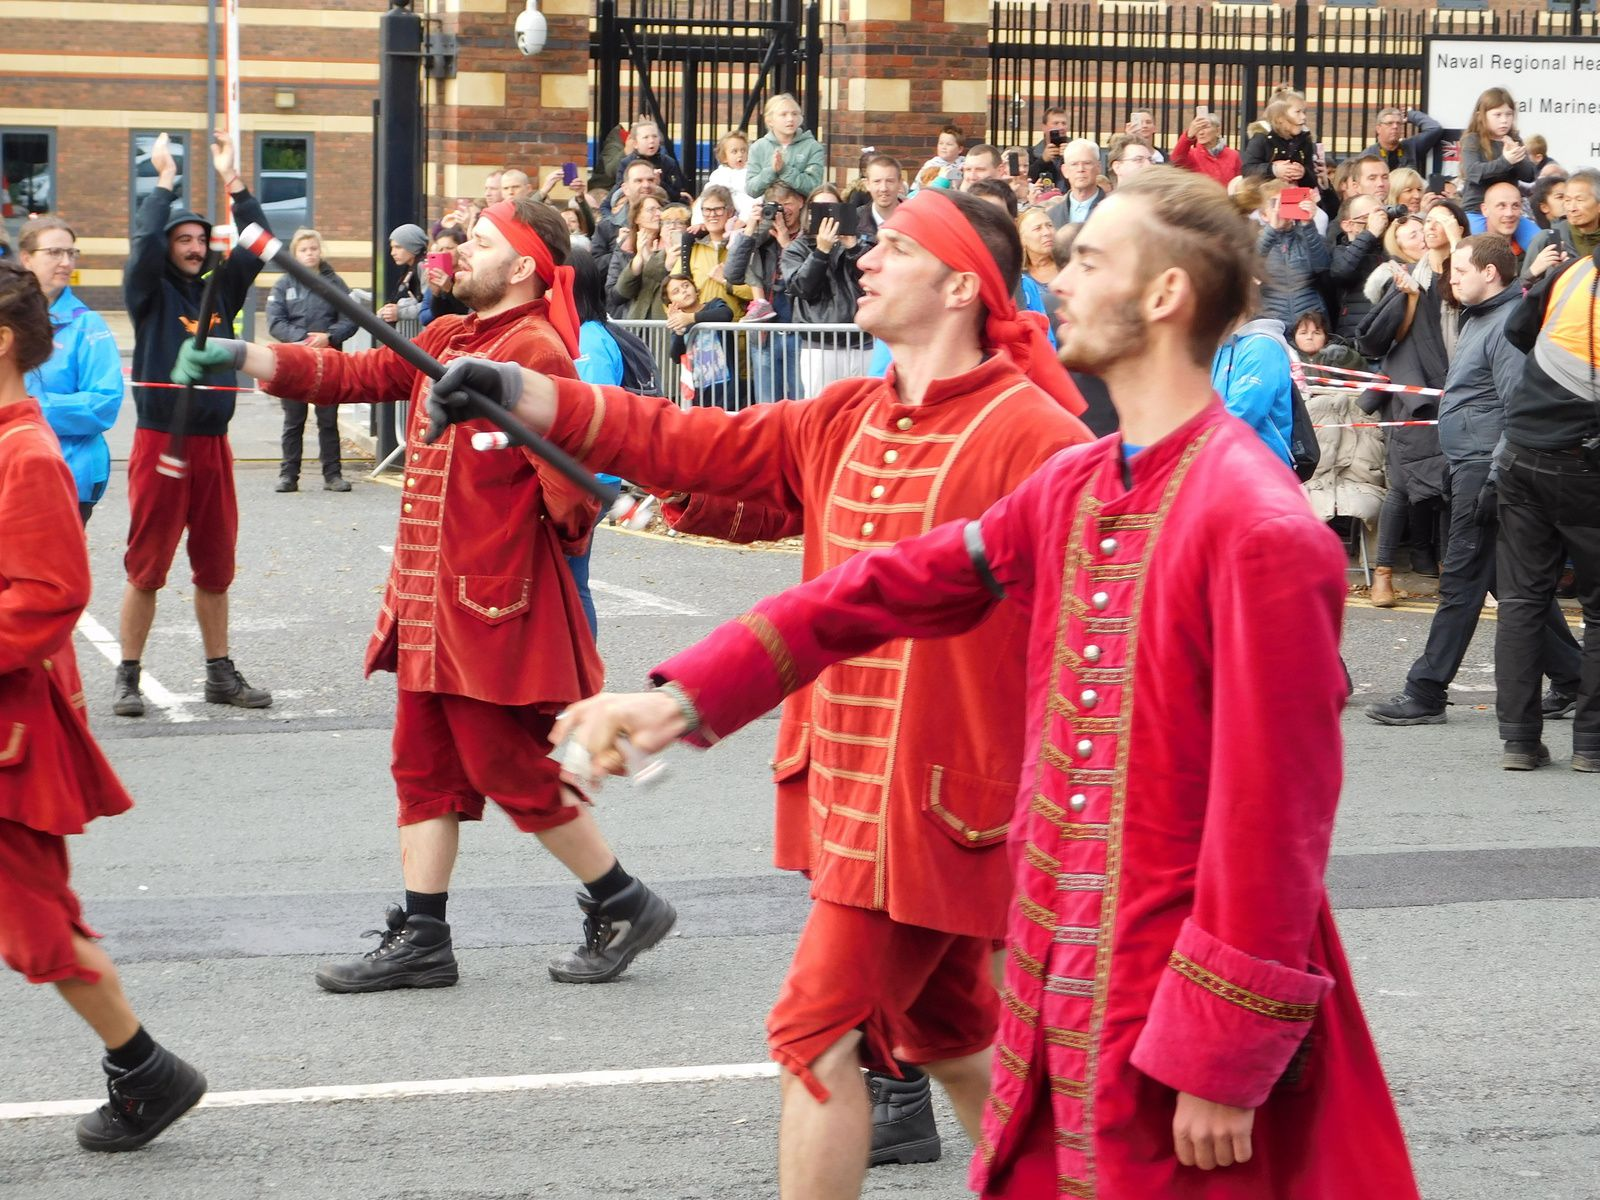 ROYAL DE LUXE LIVERPOOL'S DREAM 04,05,06,07 OCTOBRE 2018